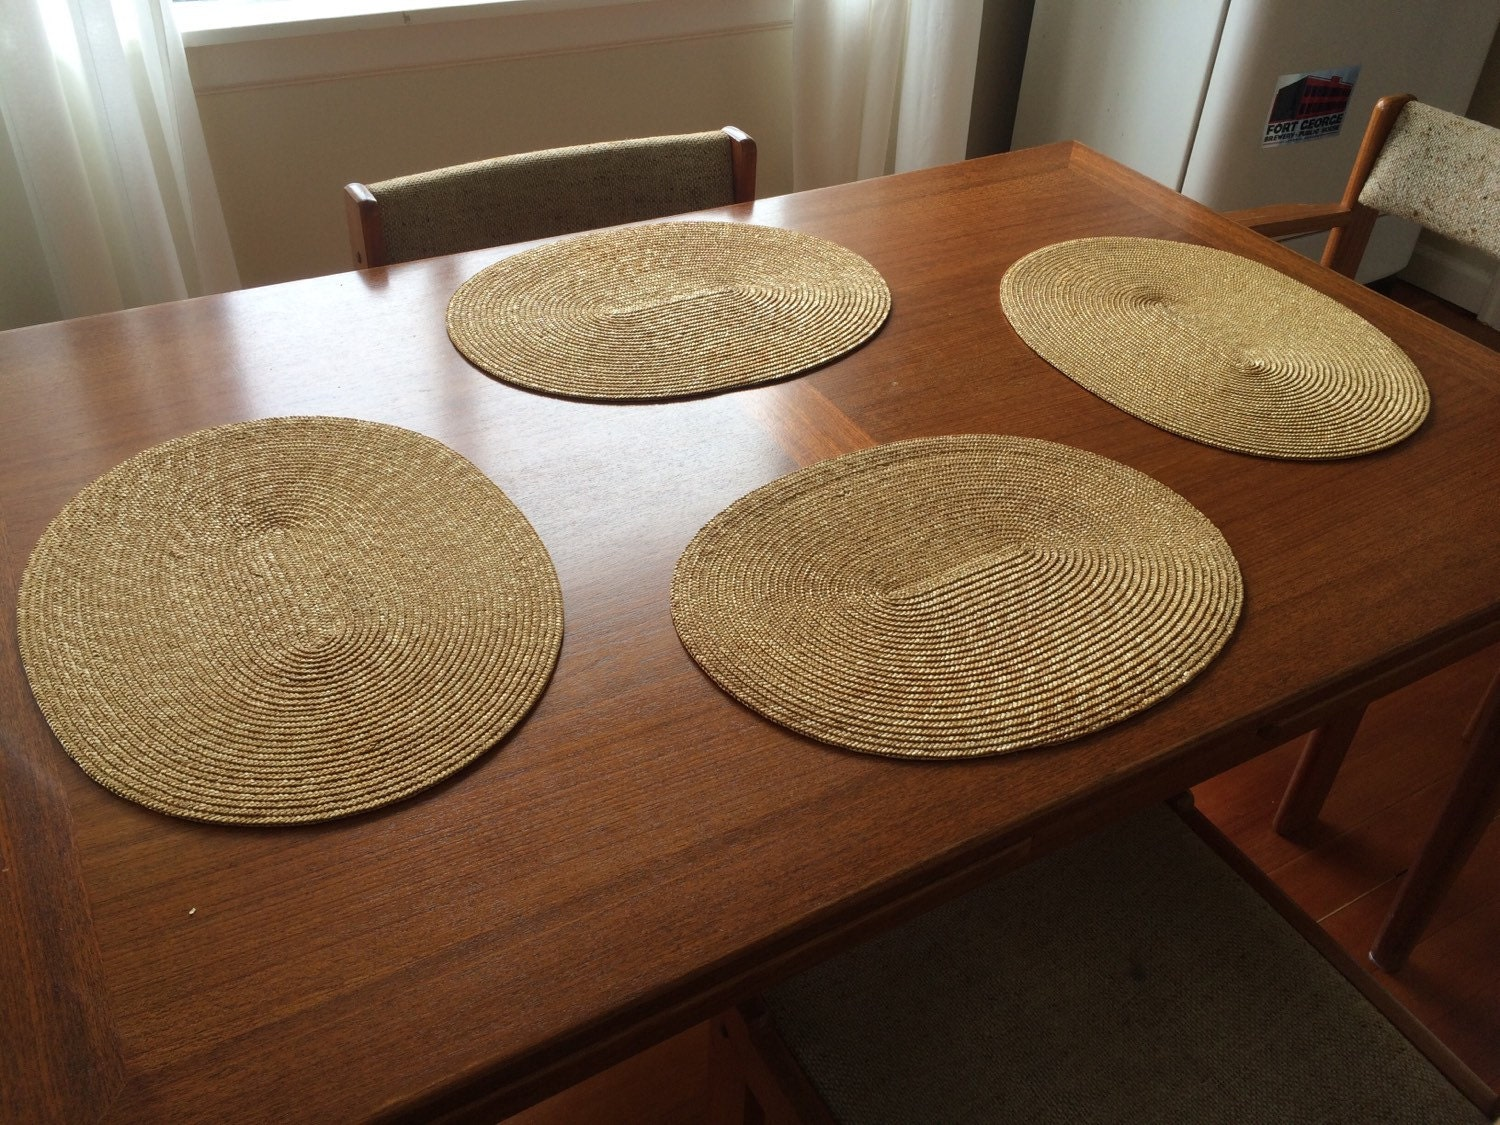 Construction de spirale de fibres naturelles tapis de paille Set de table a personnaliser